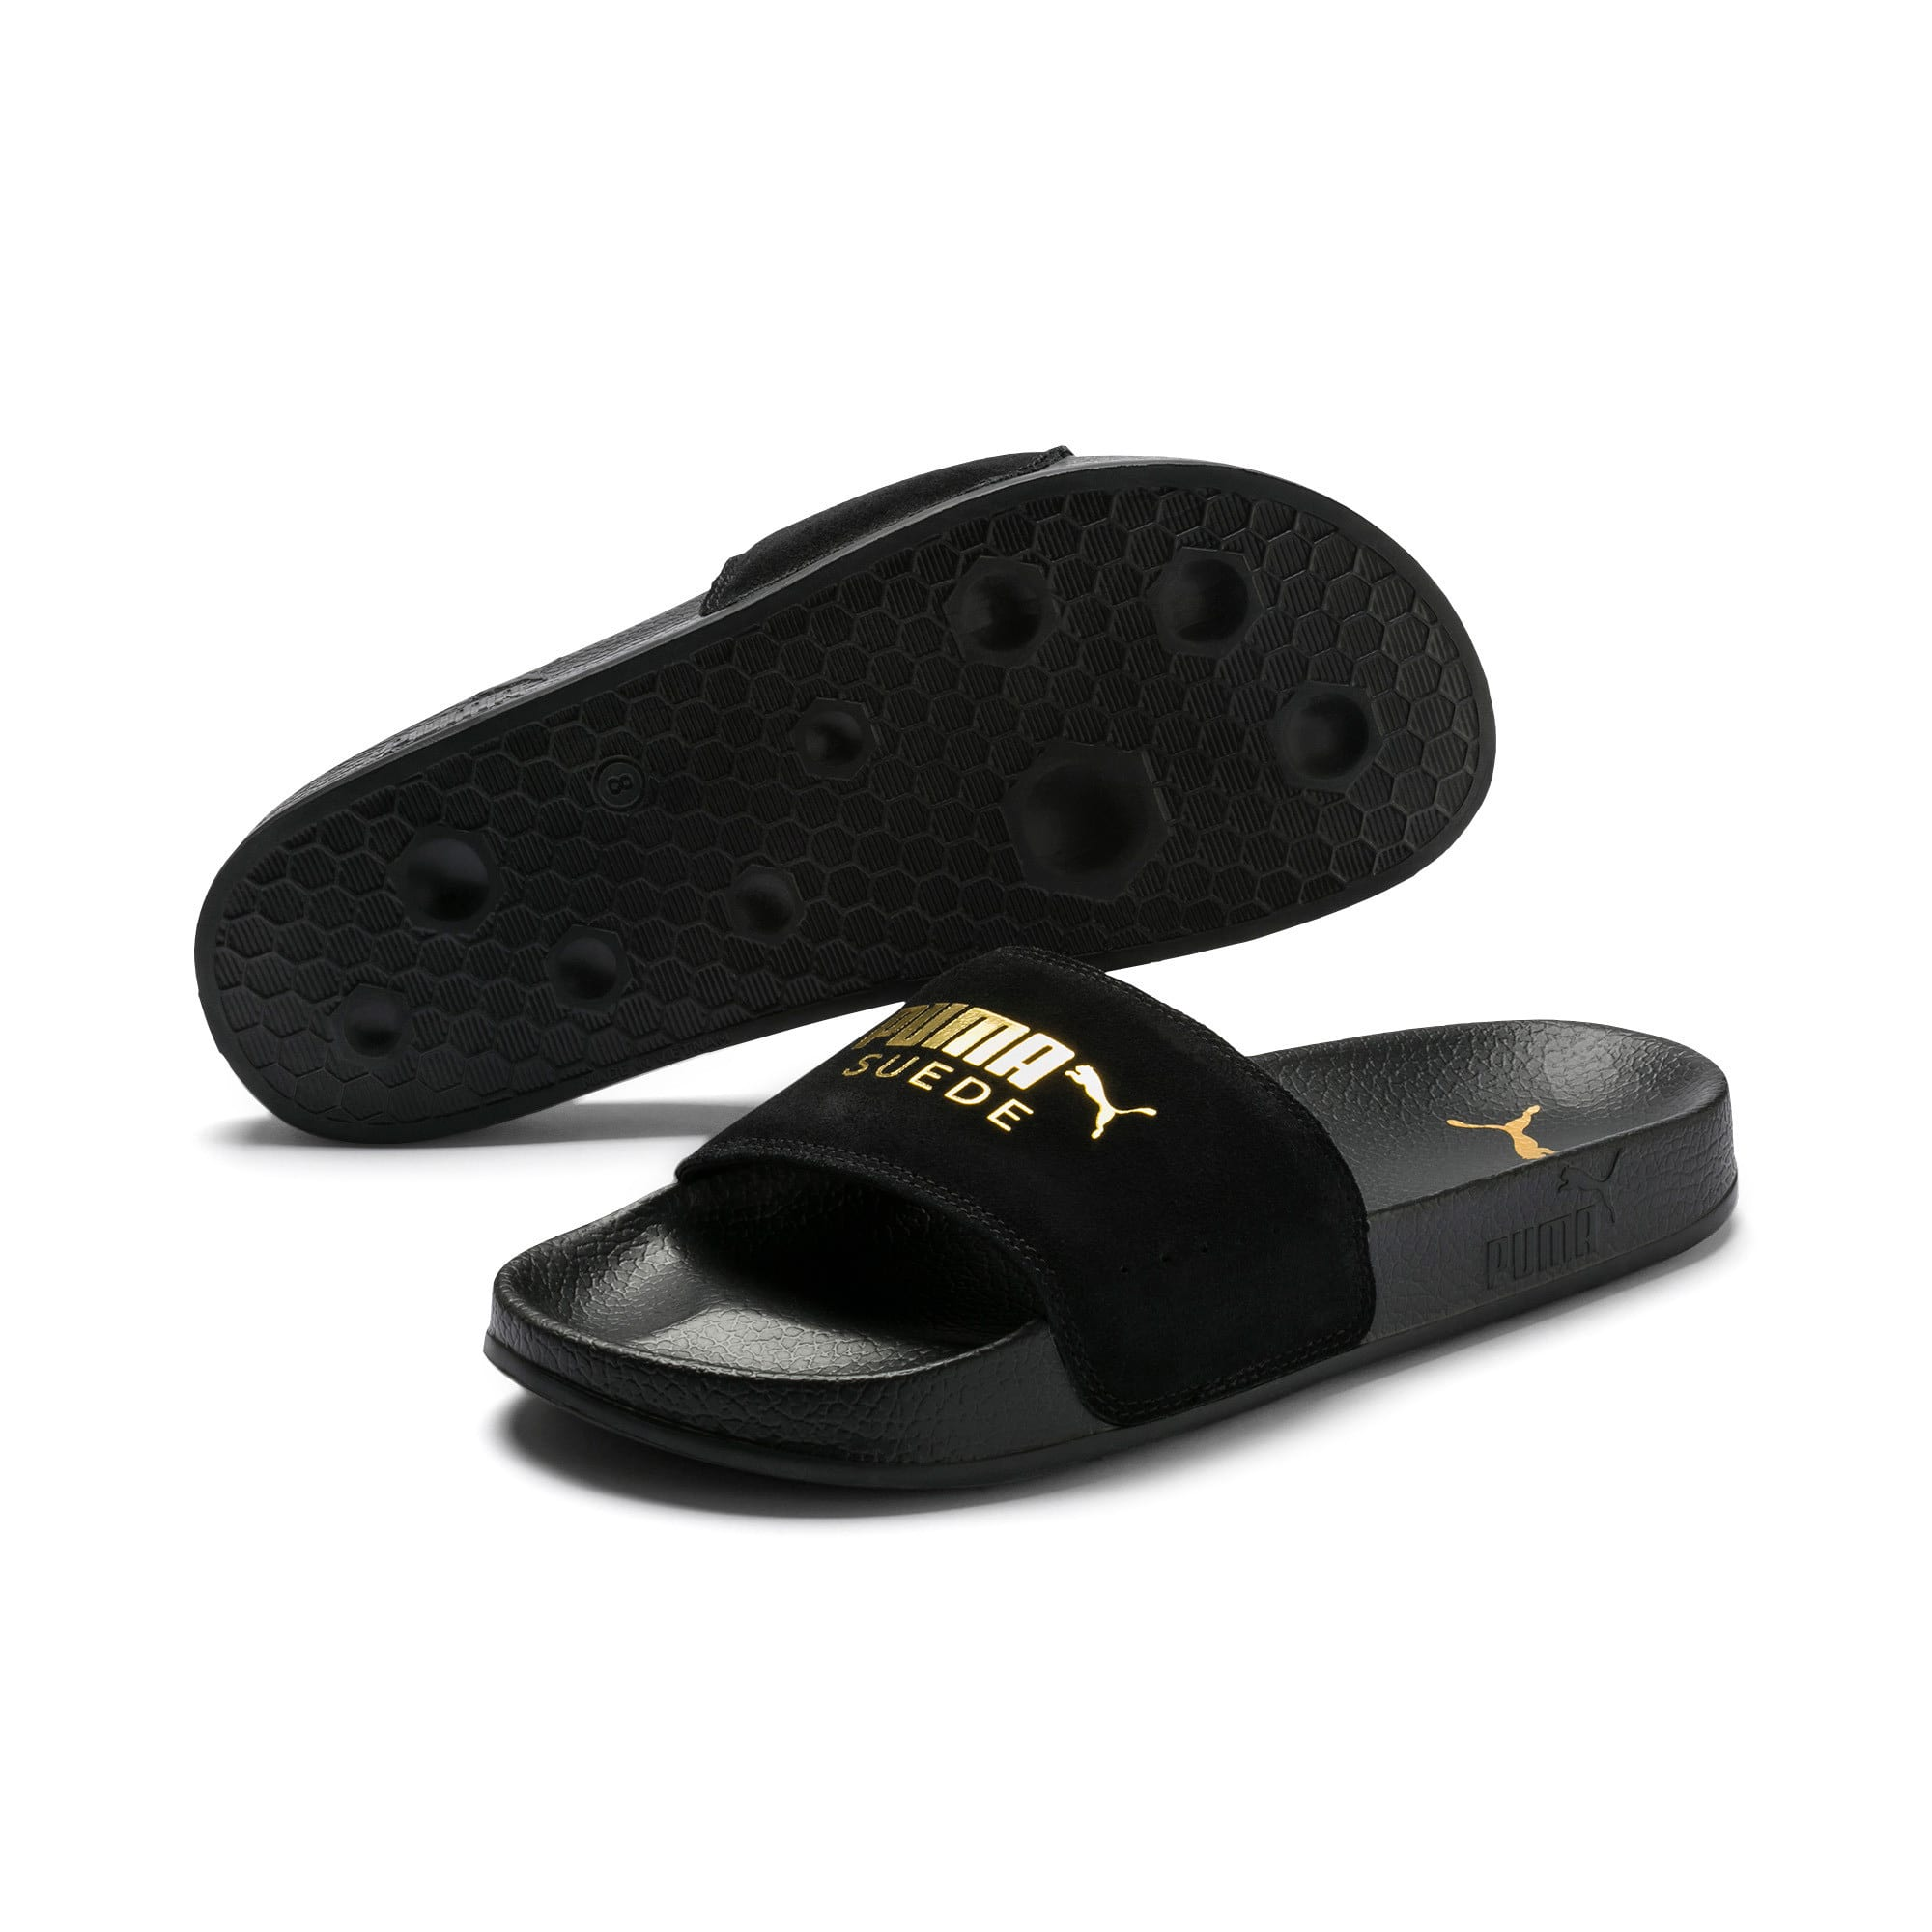 Thumbnail 2 of Suede Leadcat, Puma Black-Puma Team Gold, medium